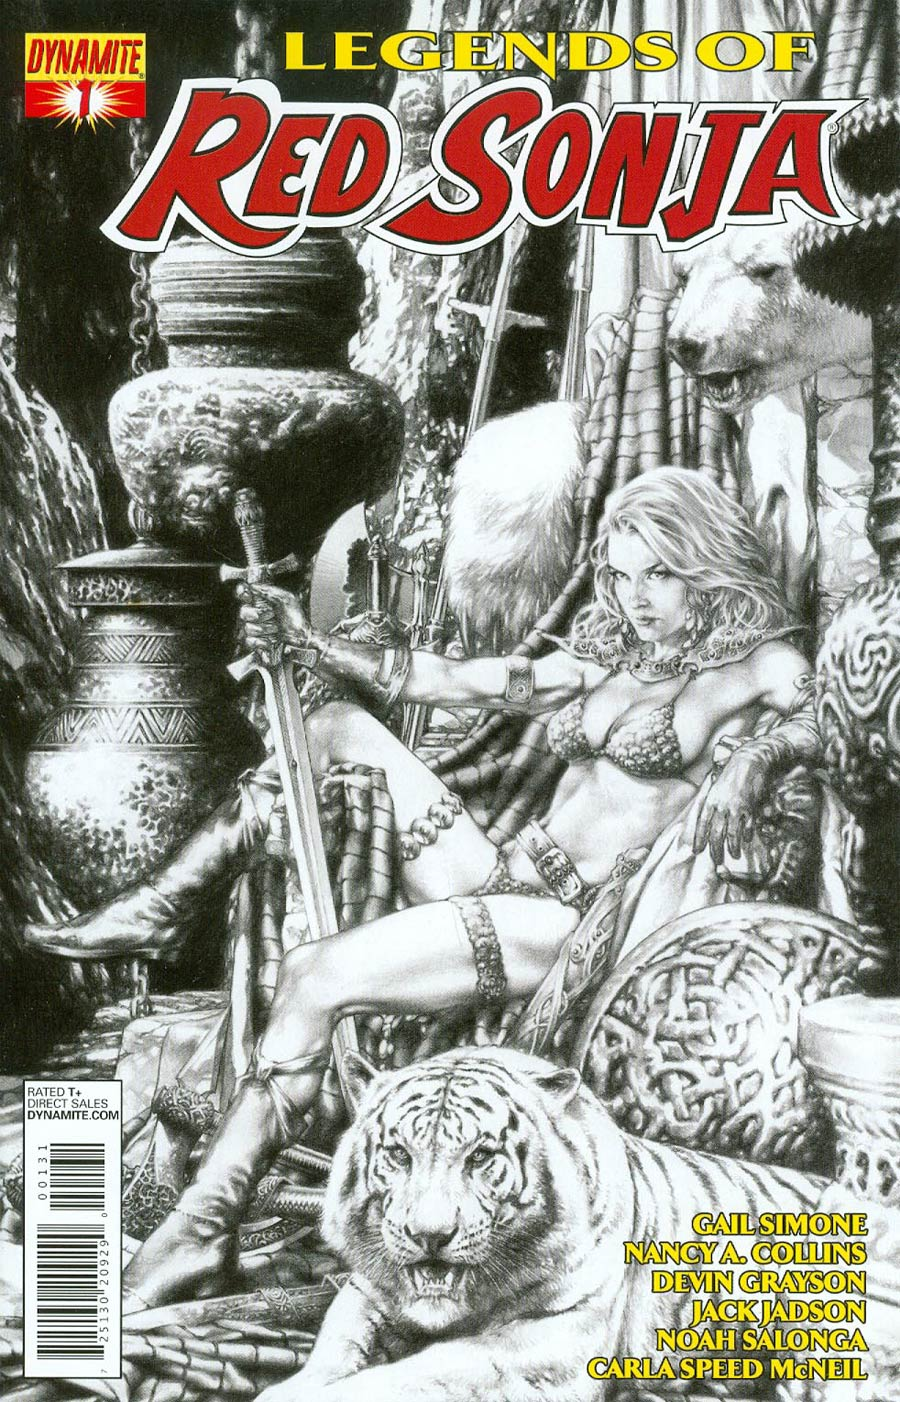 Legends Of Red Sonja #1 Cover C Reorder Edition